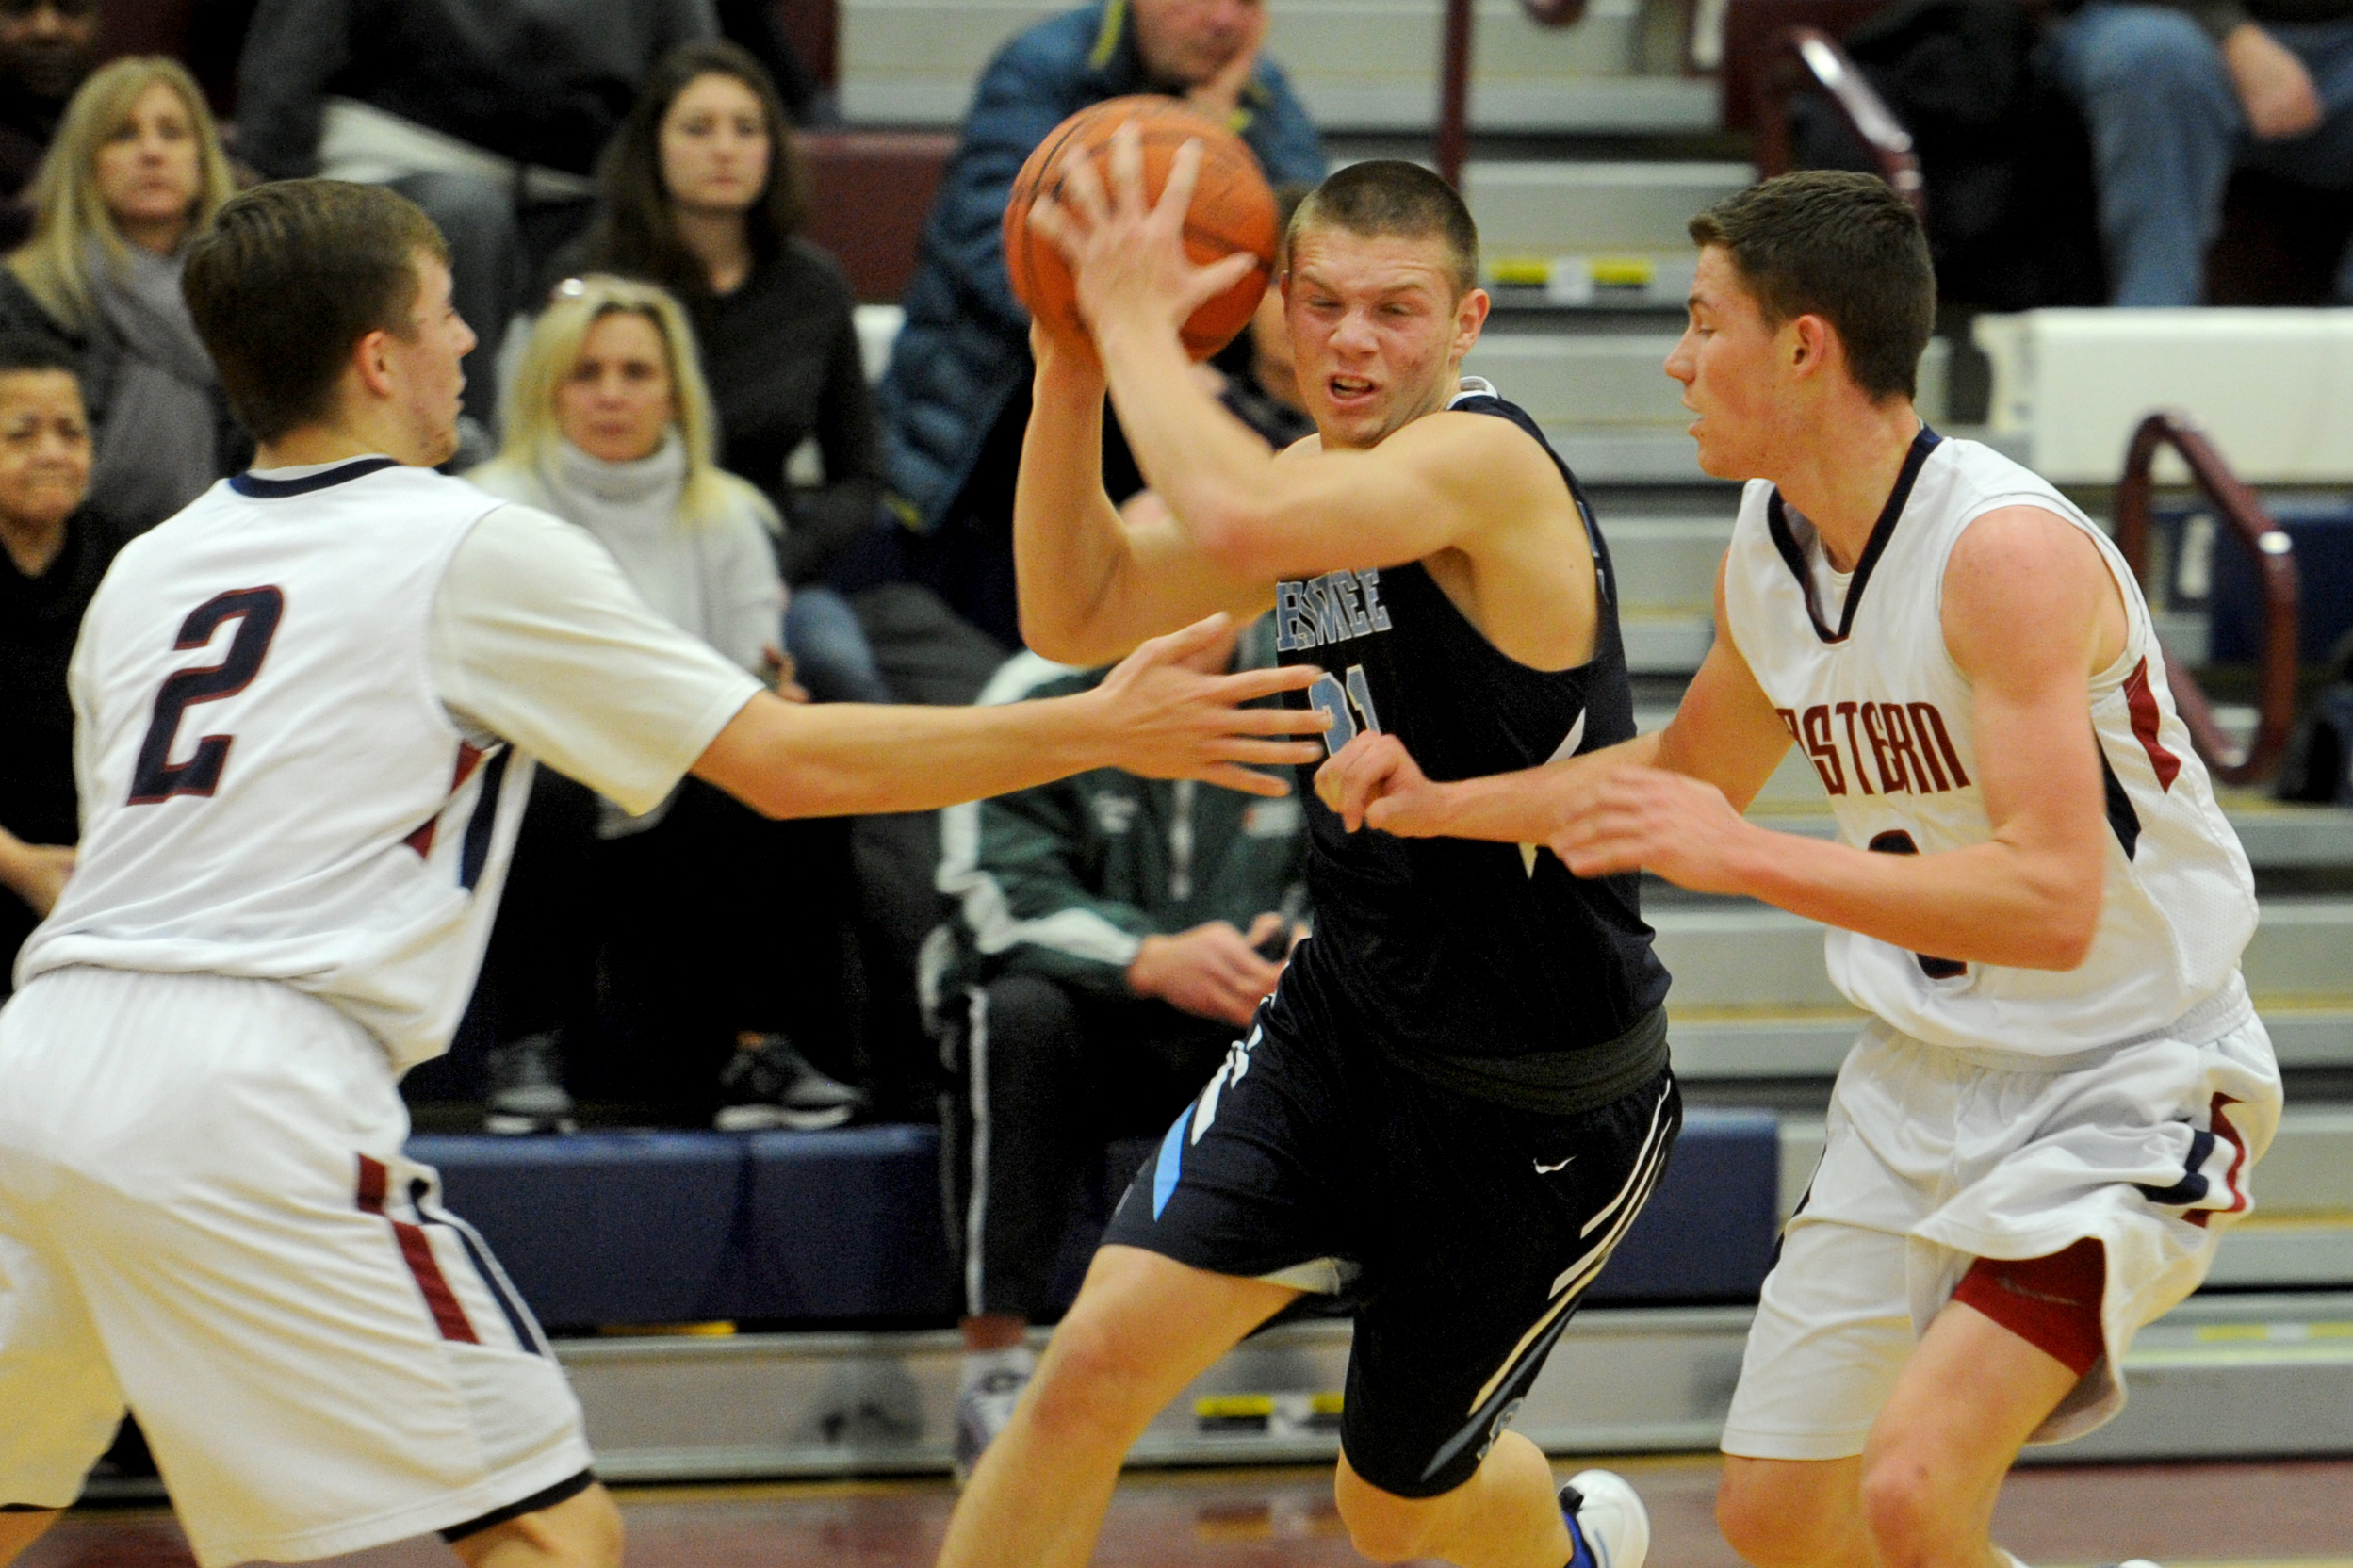 Shawnee´s Dean Noll drives through Eastern´s Jesse Barbera (right) and Andrew Heck.